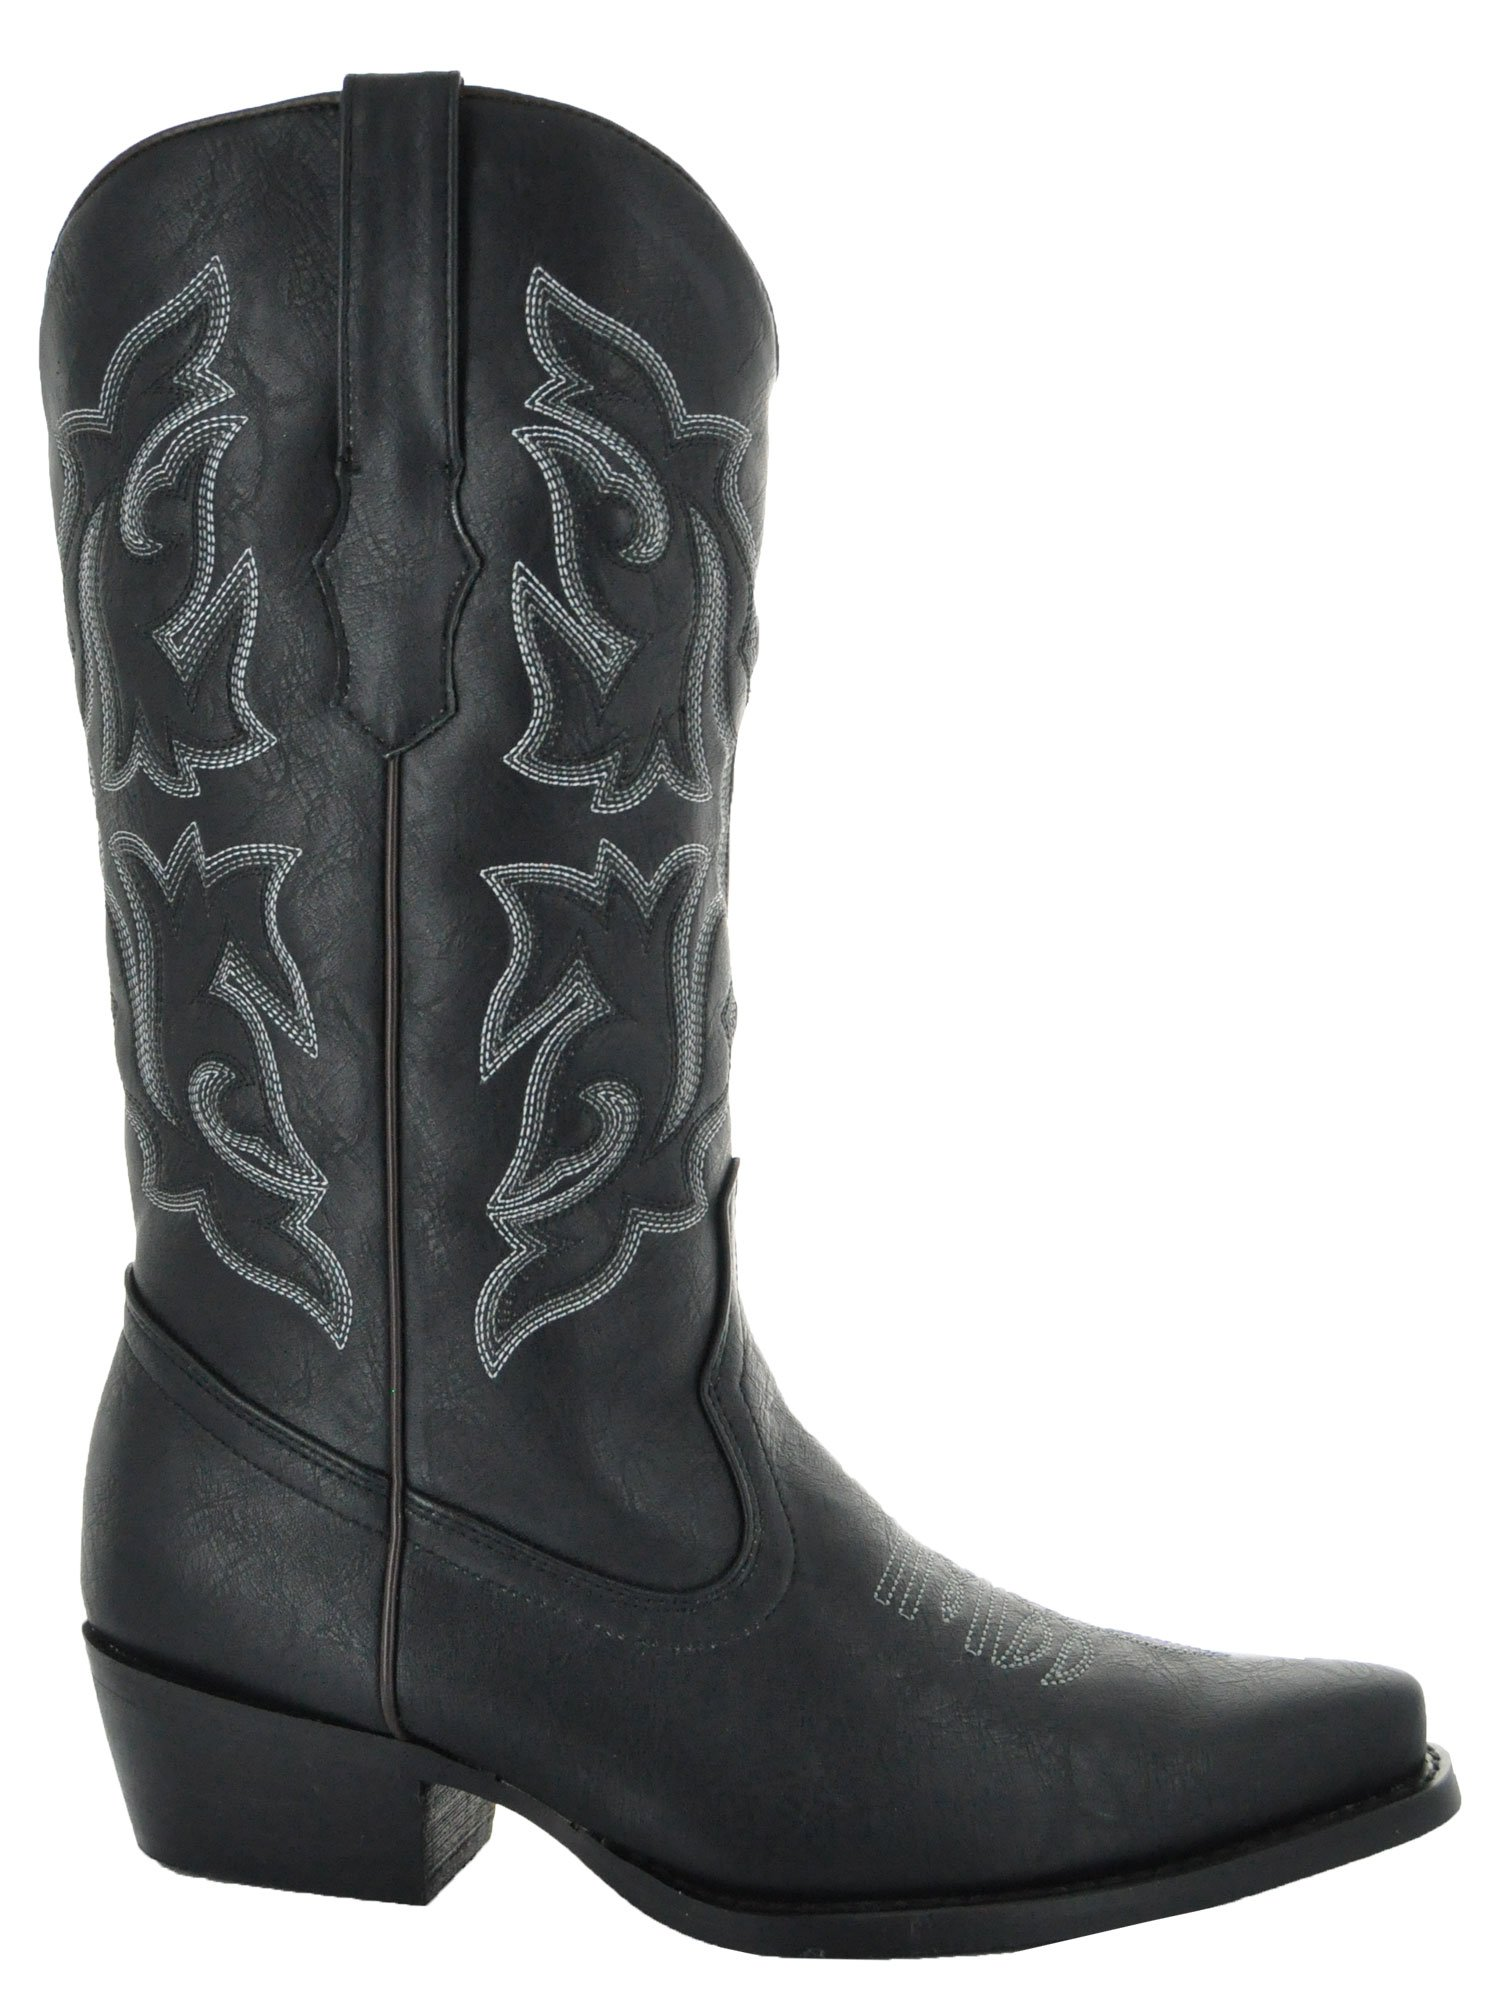 Country Love Pointed Toe Women's Cowboy Boots W101-1001 (7, Black) by Country Love Boots (Image #2)